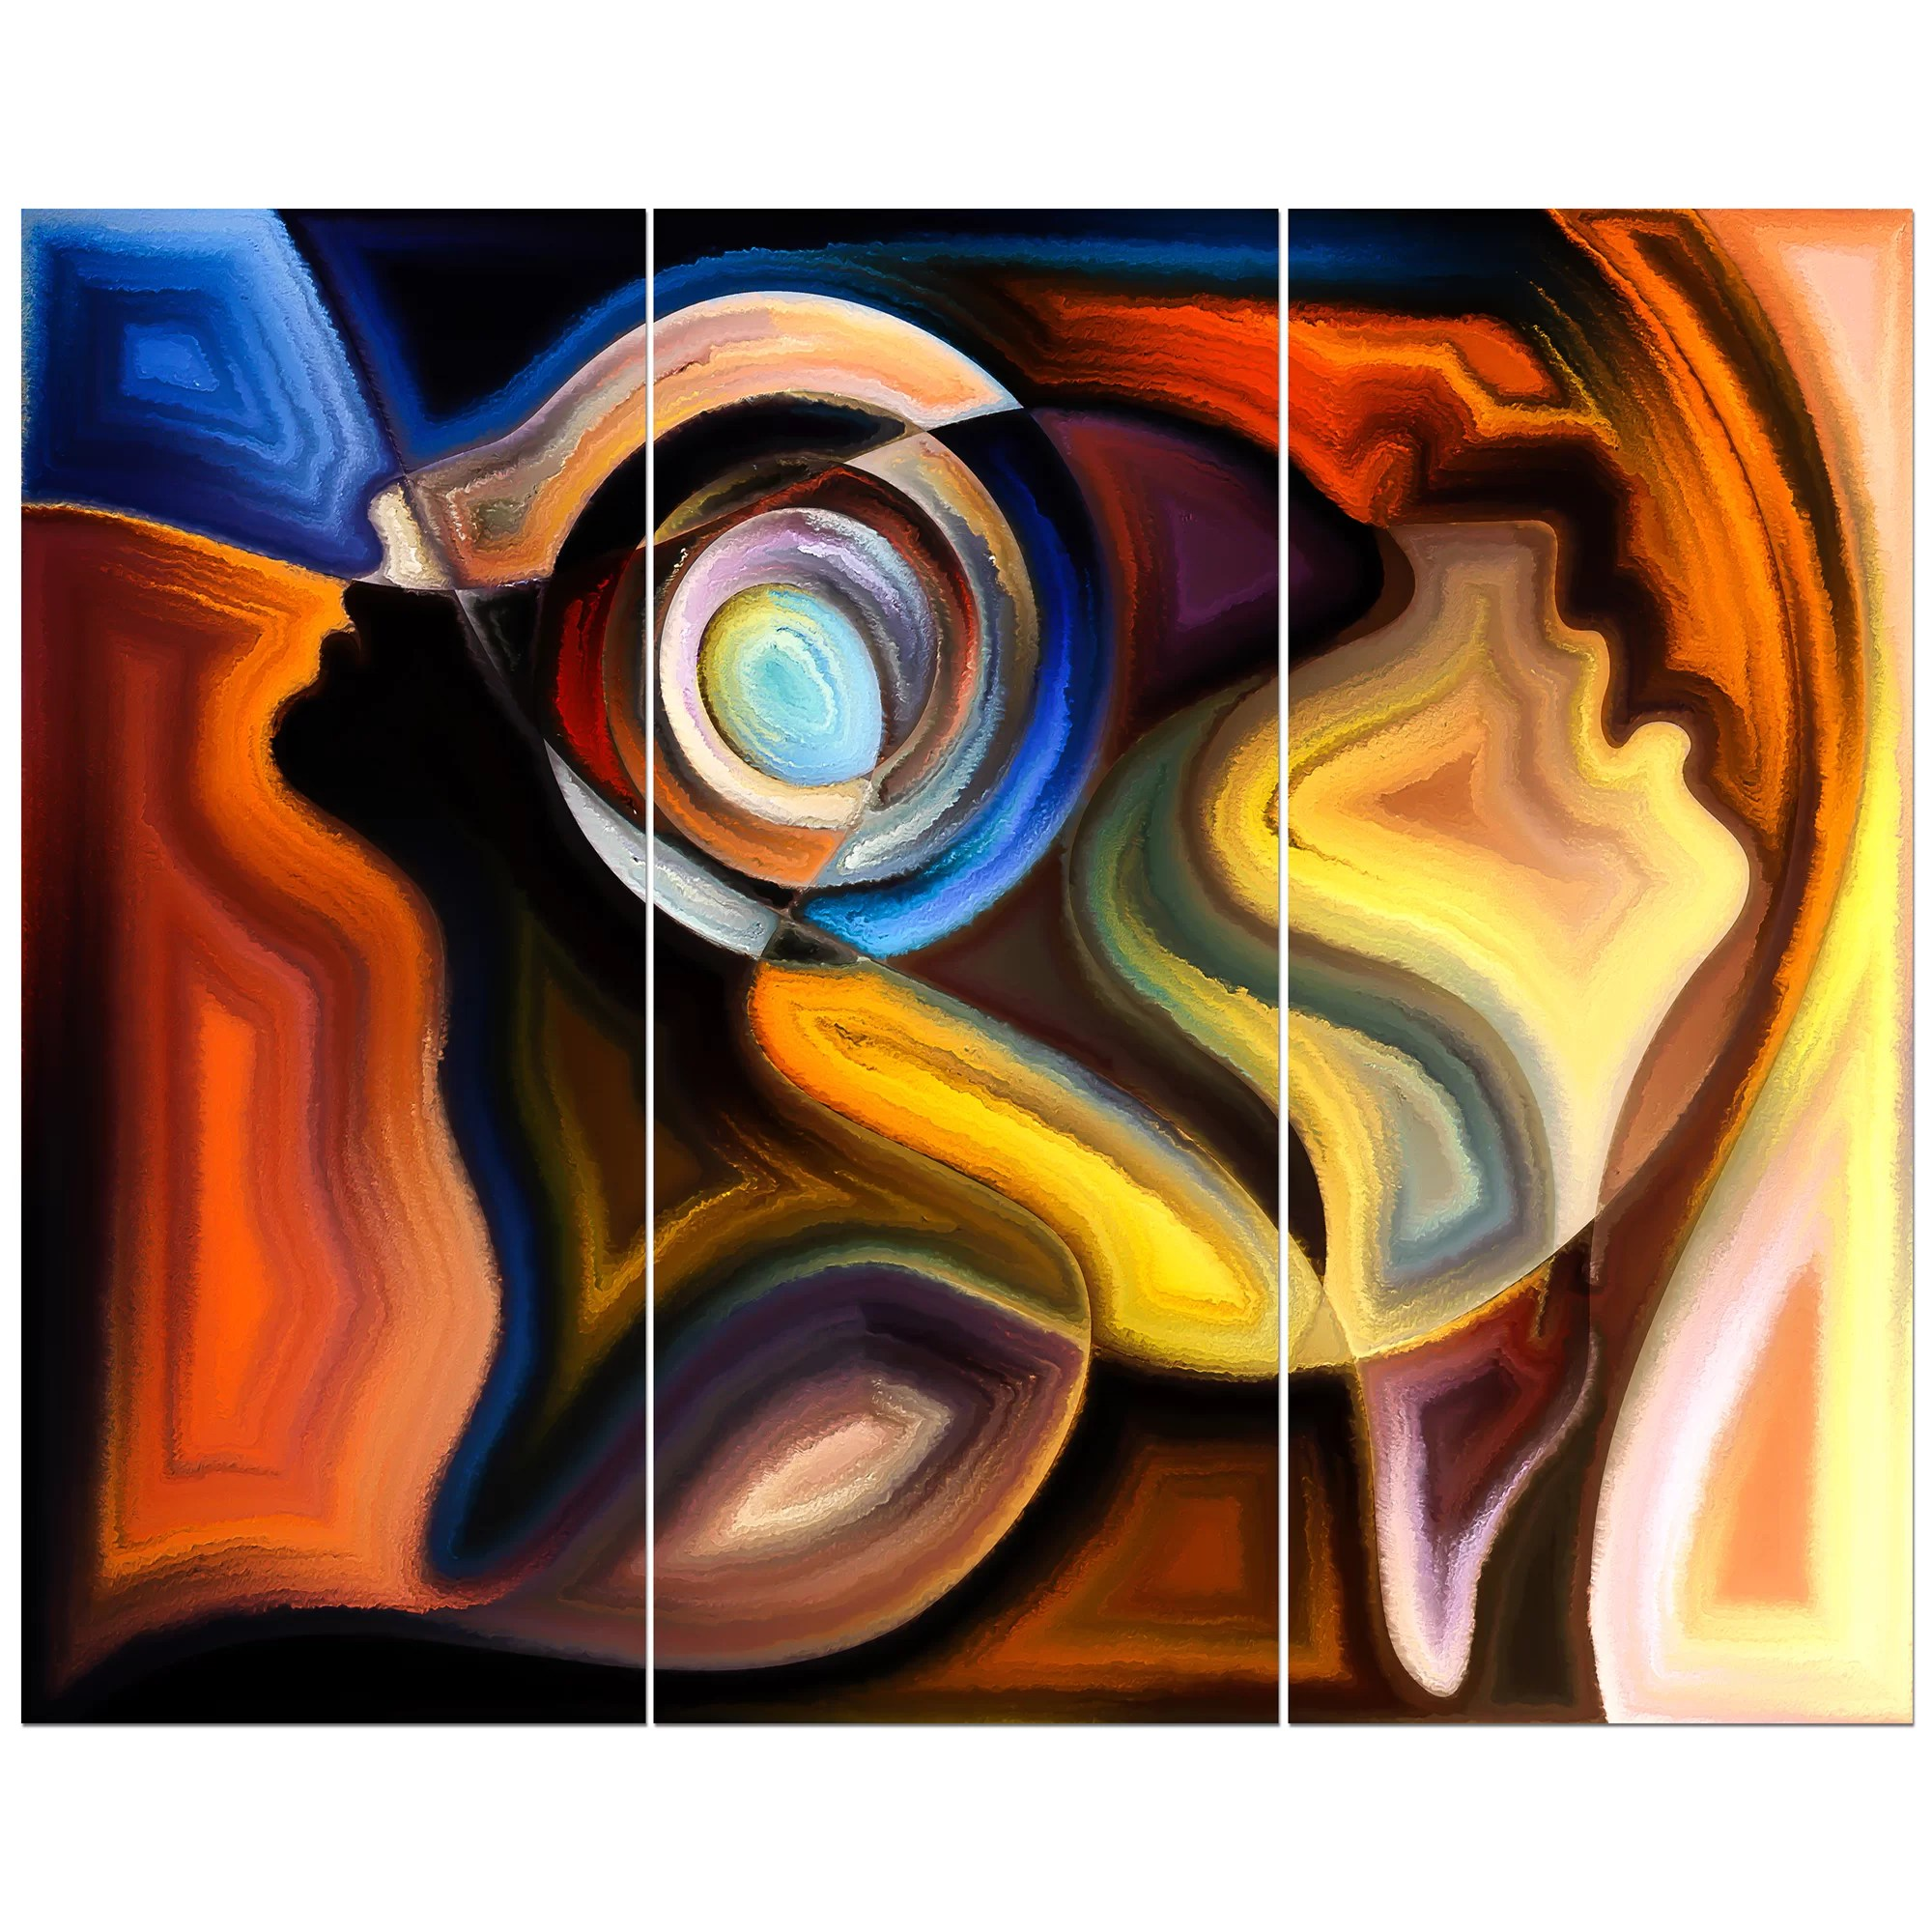 Abstract Art Prints On Canvas Abstract Human Artwork Graphic Art Print Multi Piece Image On Wrapped Canvas